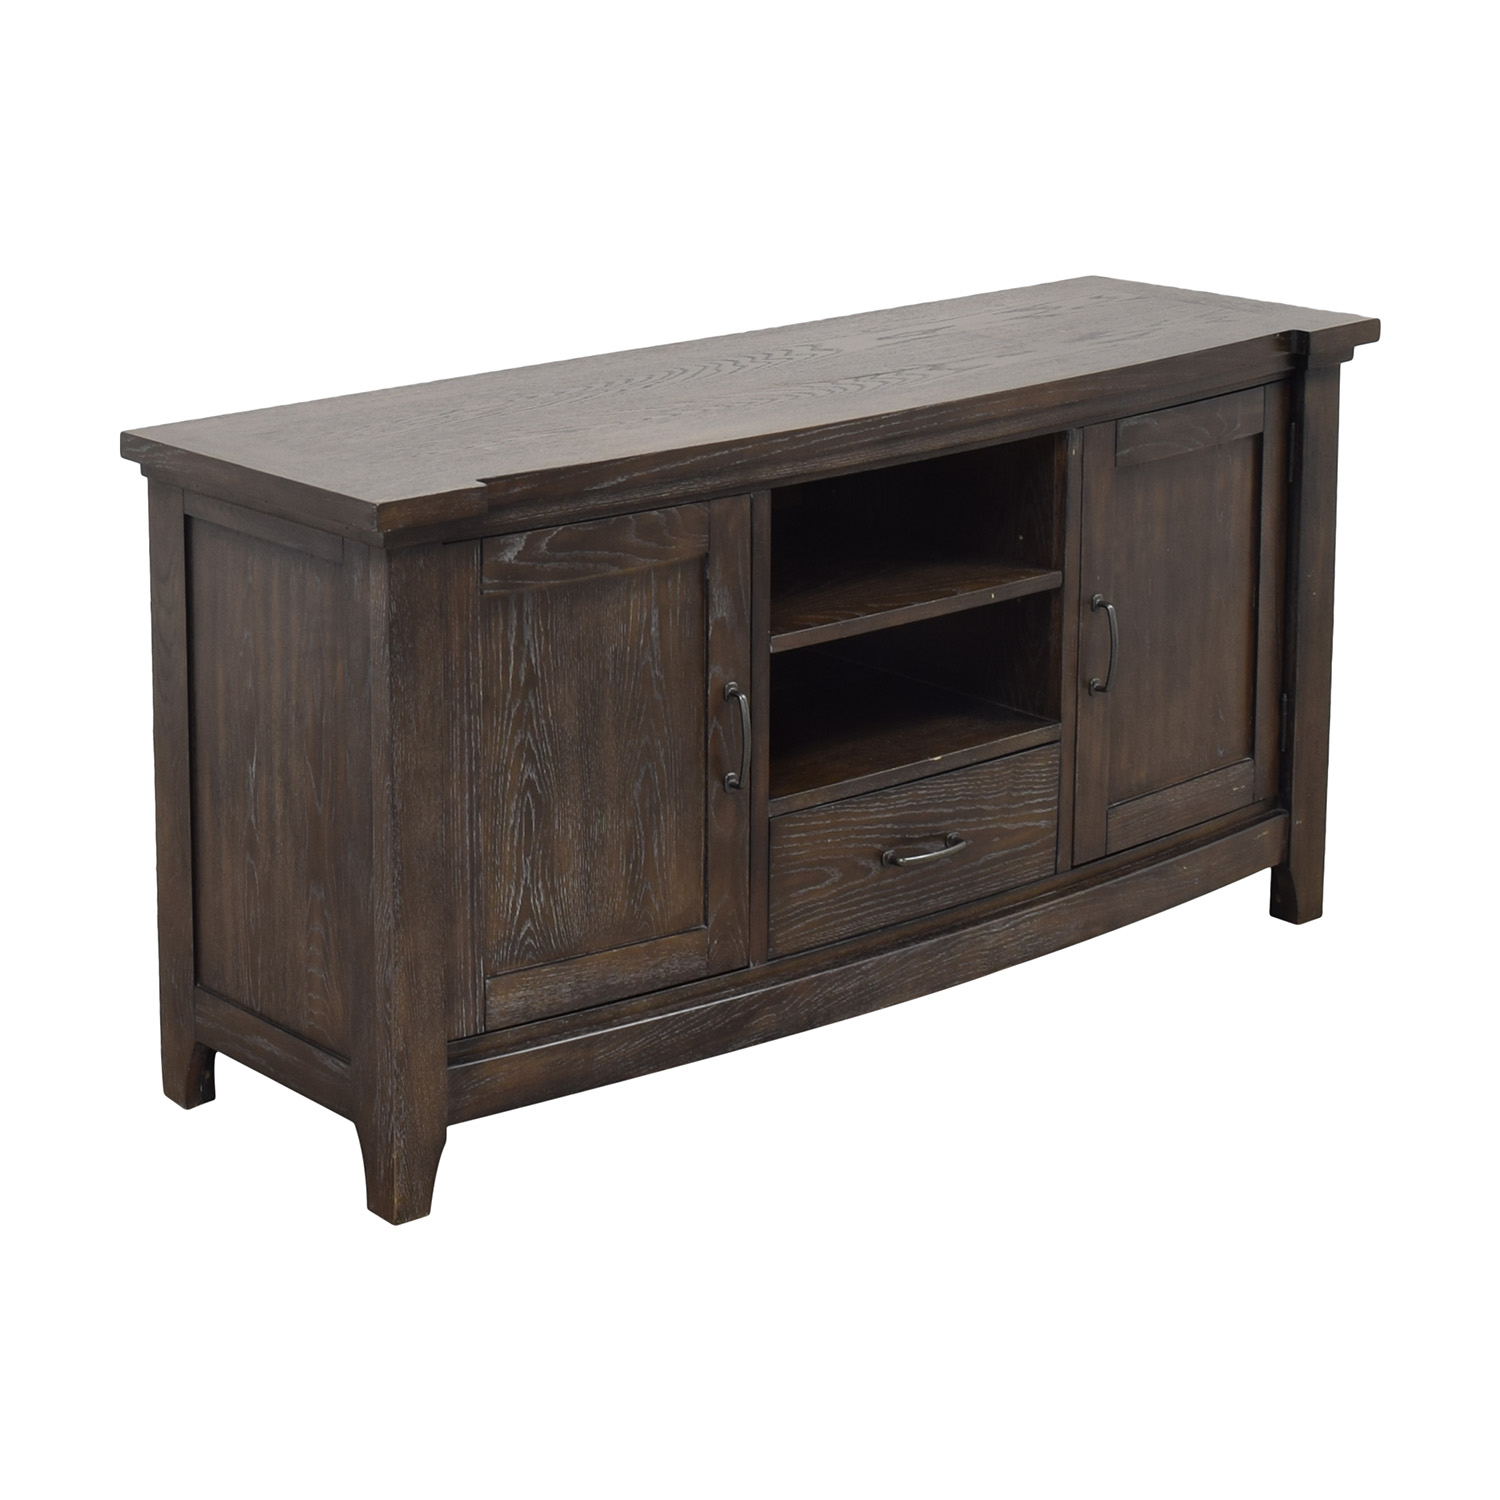 Broyhill Furniture Broyhill Furniture Media Stand Media Units